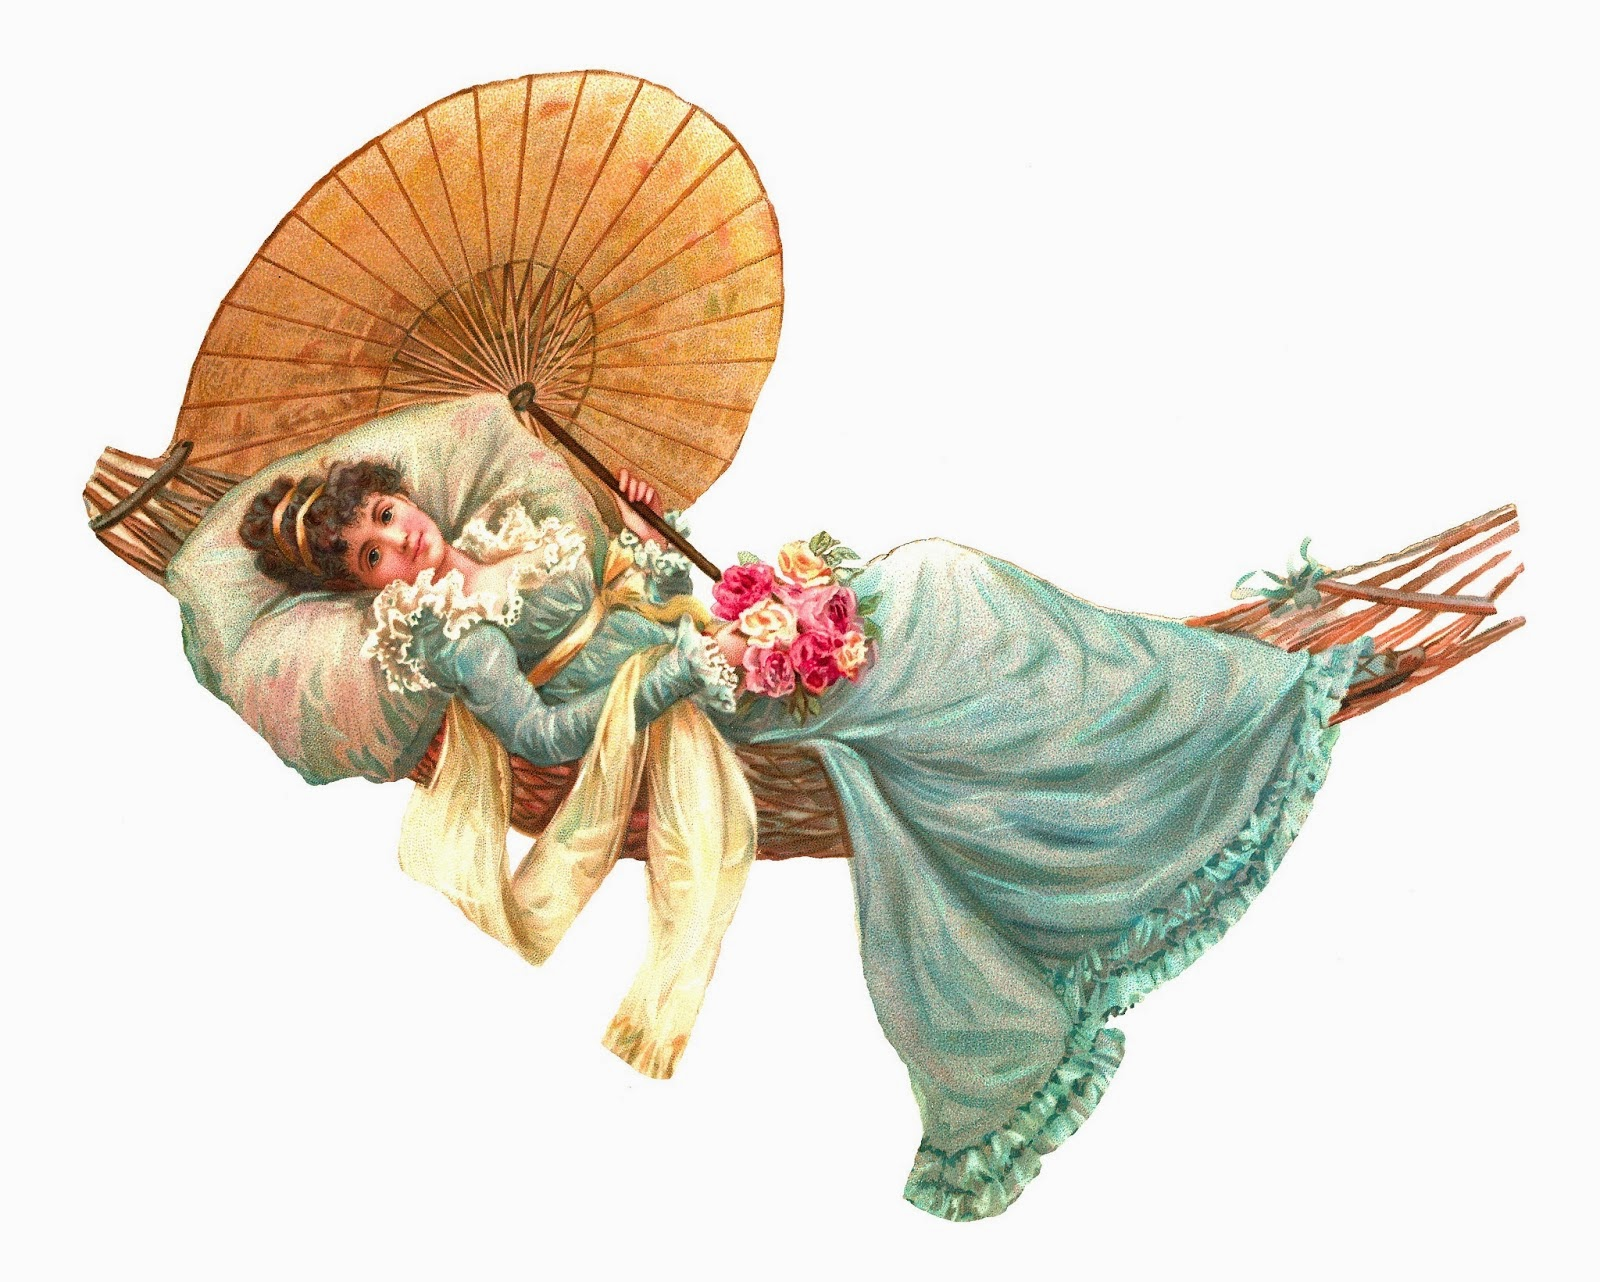 Vintage, color drawing of a regency woman relaxing in a hammock with flowers and a parasol.